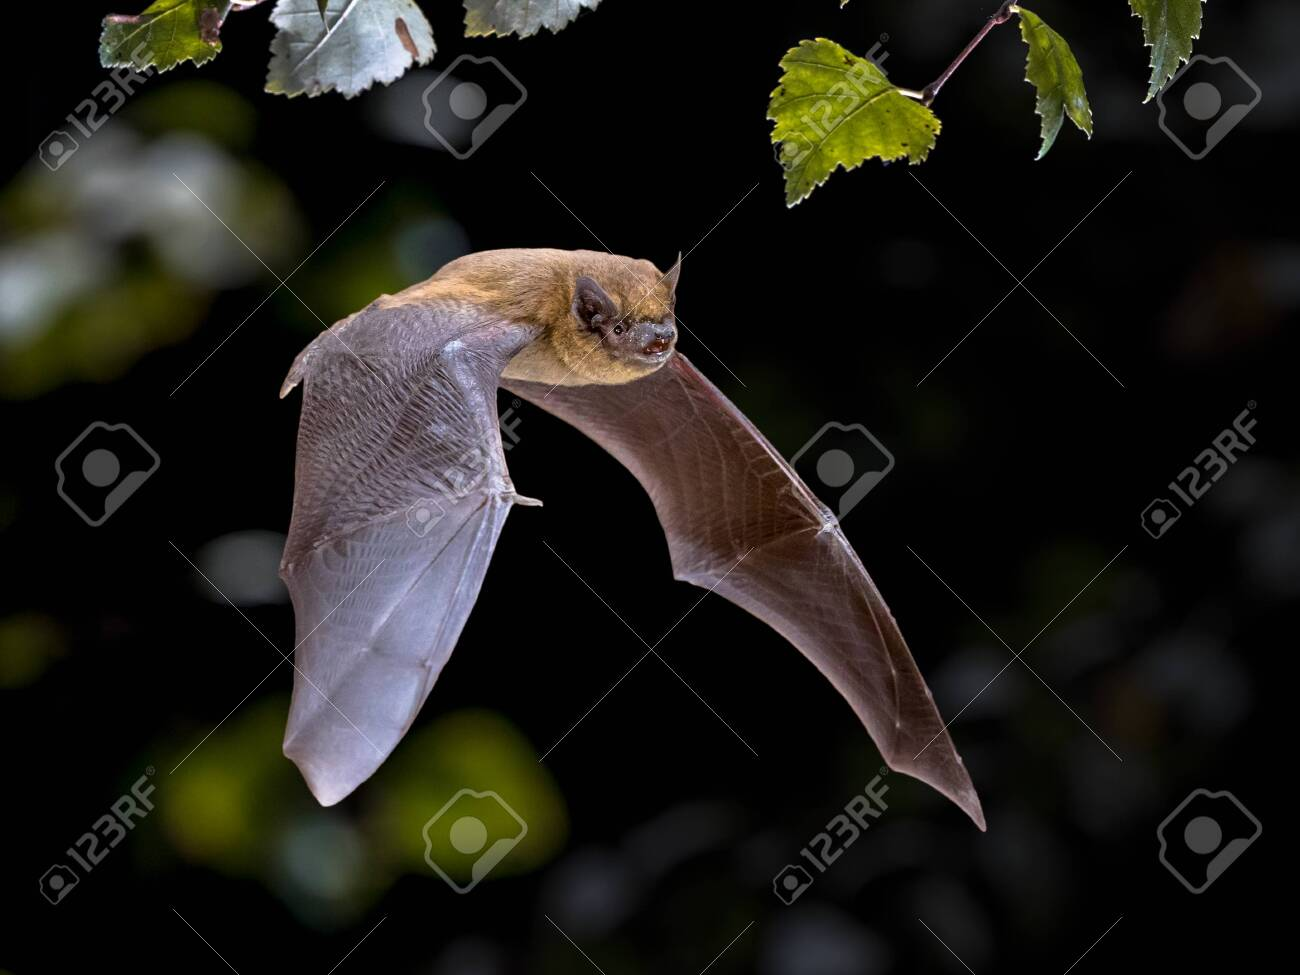 Flying Pipistrelle bat (Pipistrellus pipistrellus) action shot of hunting animal in natural forest background. This species is know for roosting and living in urban areas in Europe and Asia. - 130816933